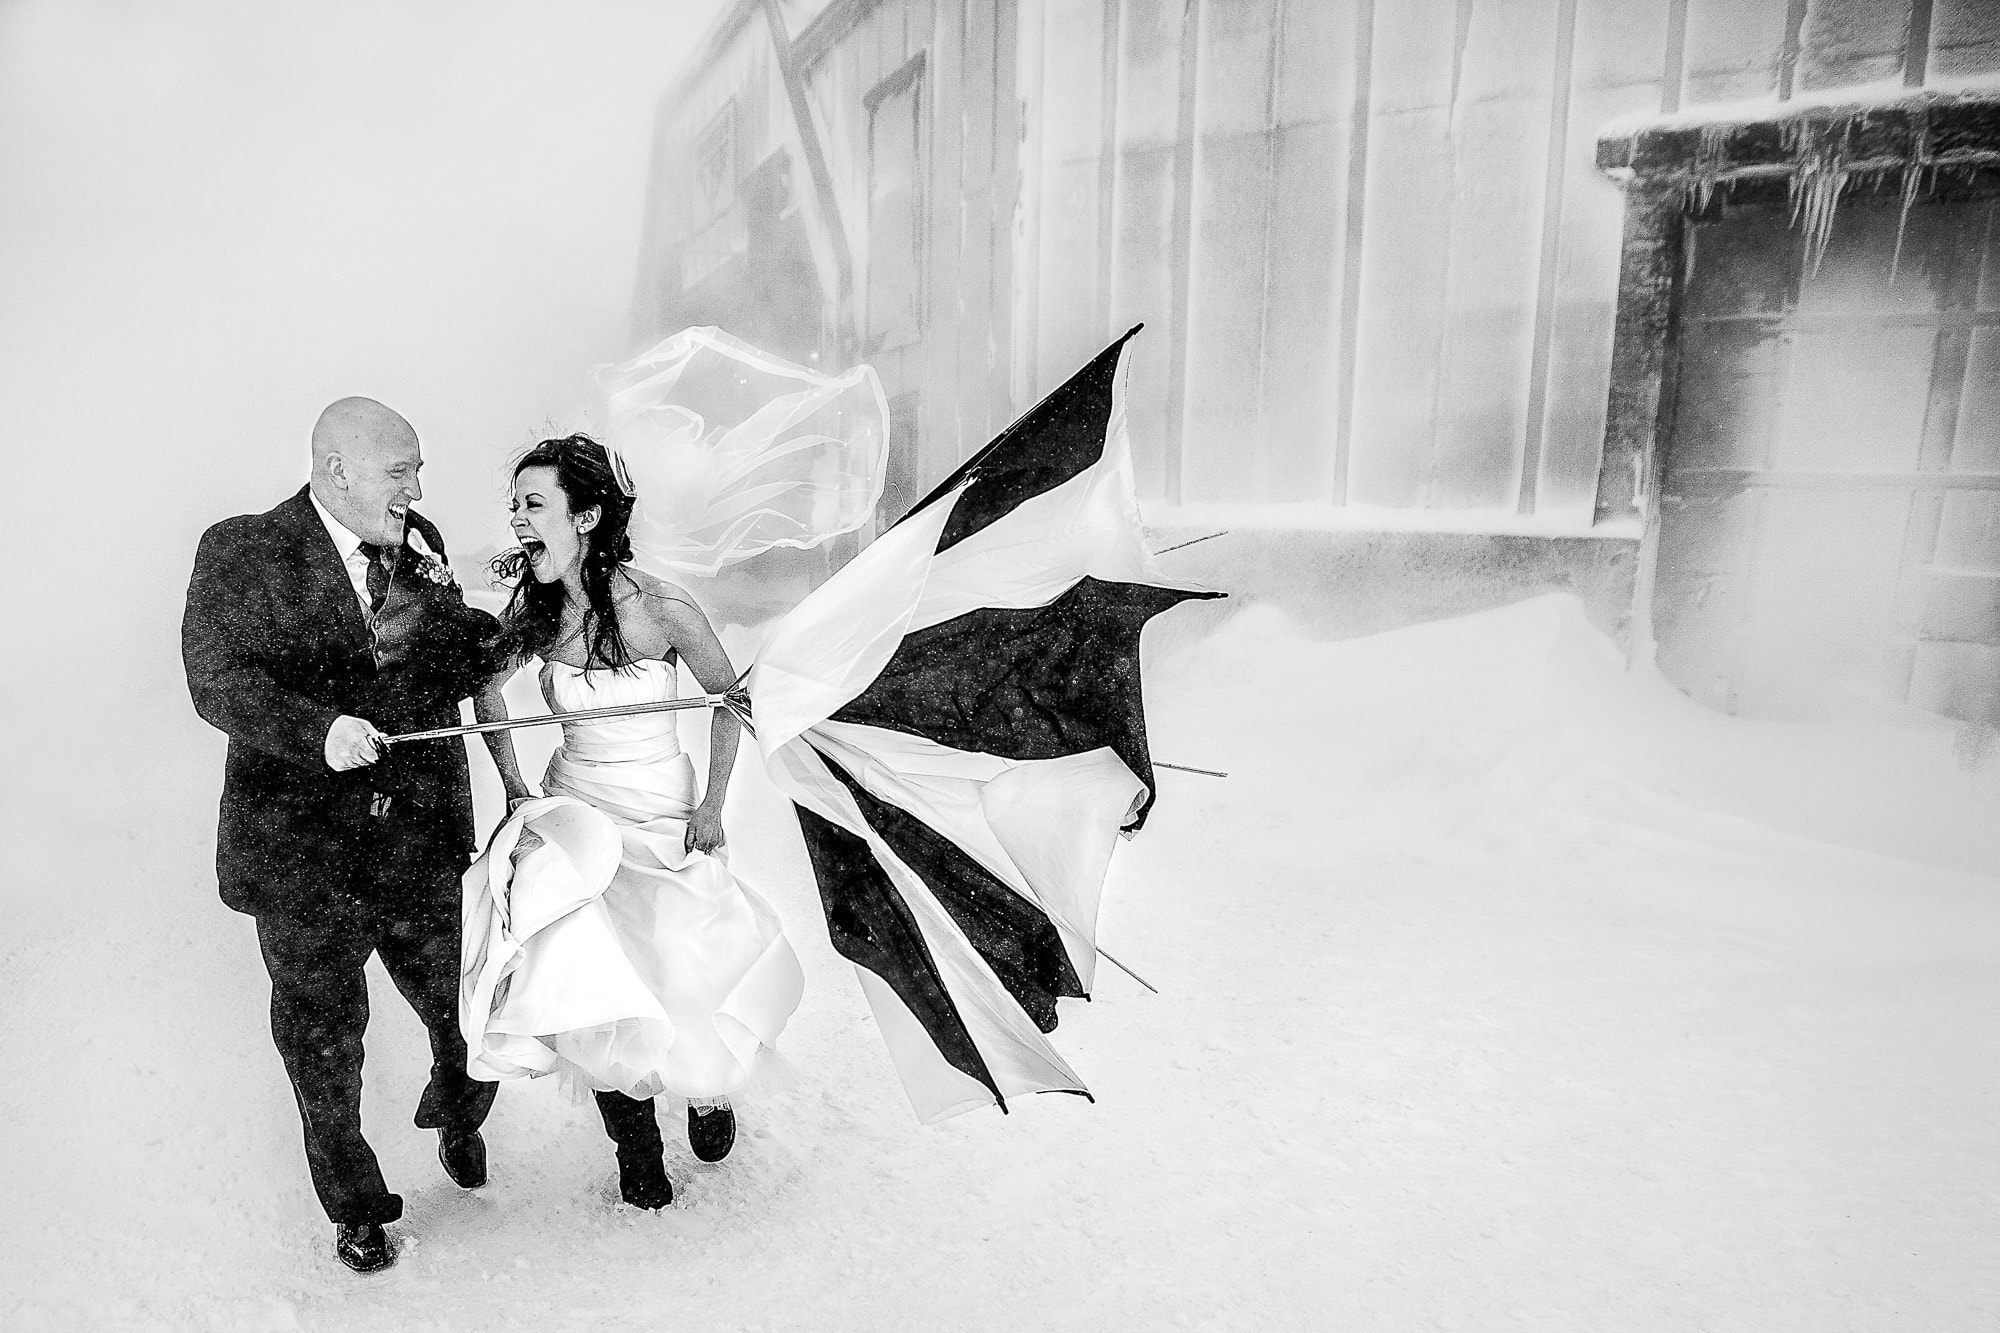 Bride and Groom in snow storm with inverted umbrella fearless photographers award winning photo